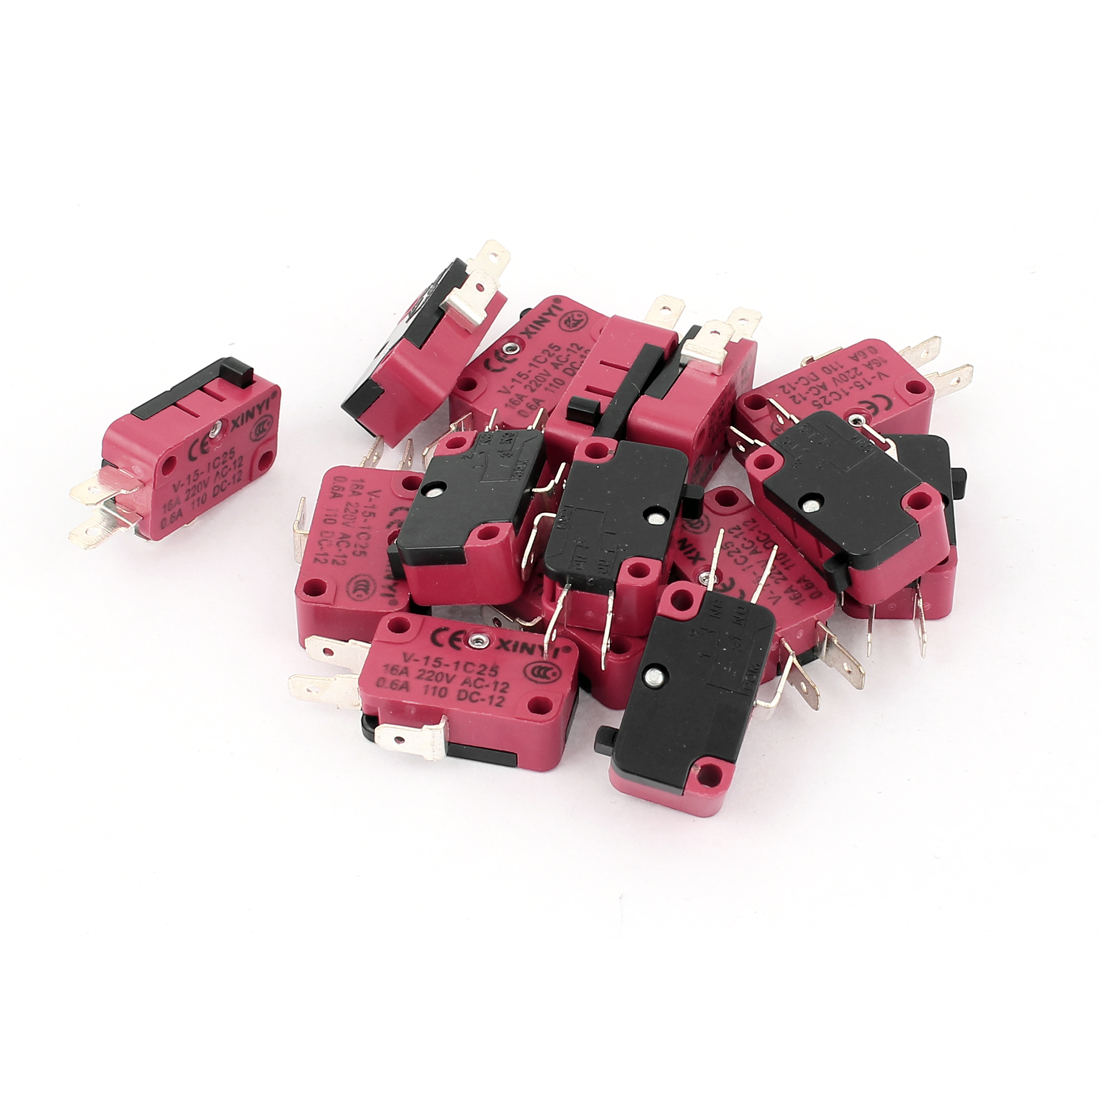 15 Pcs AC 220V 16A Micro Limit Switch Button Momentary Snap Action CNC